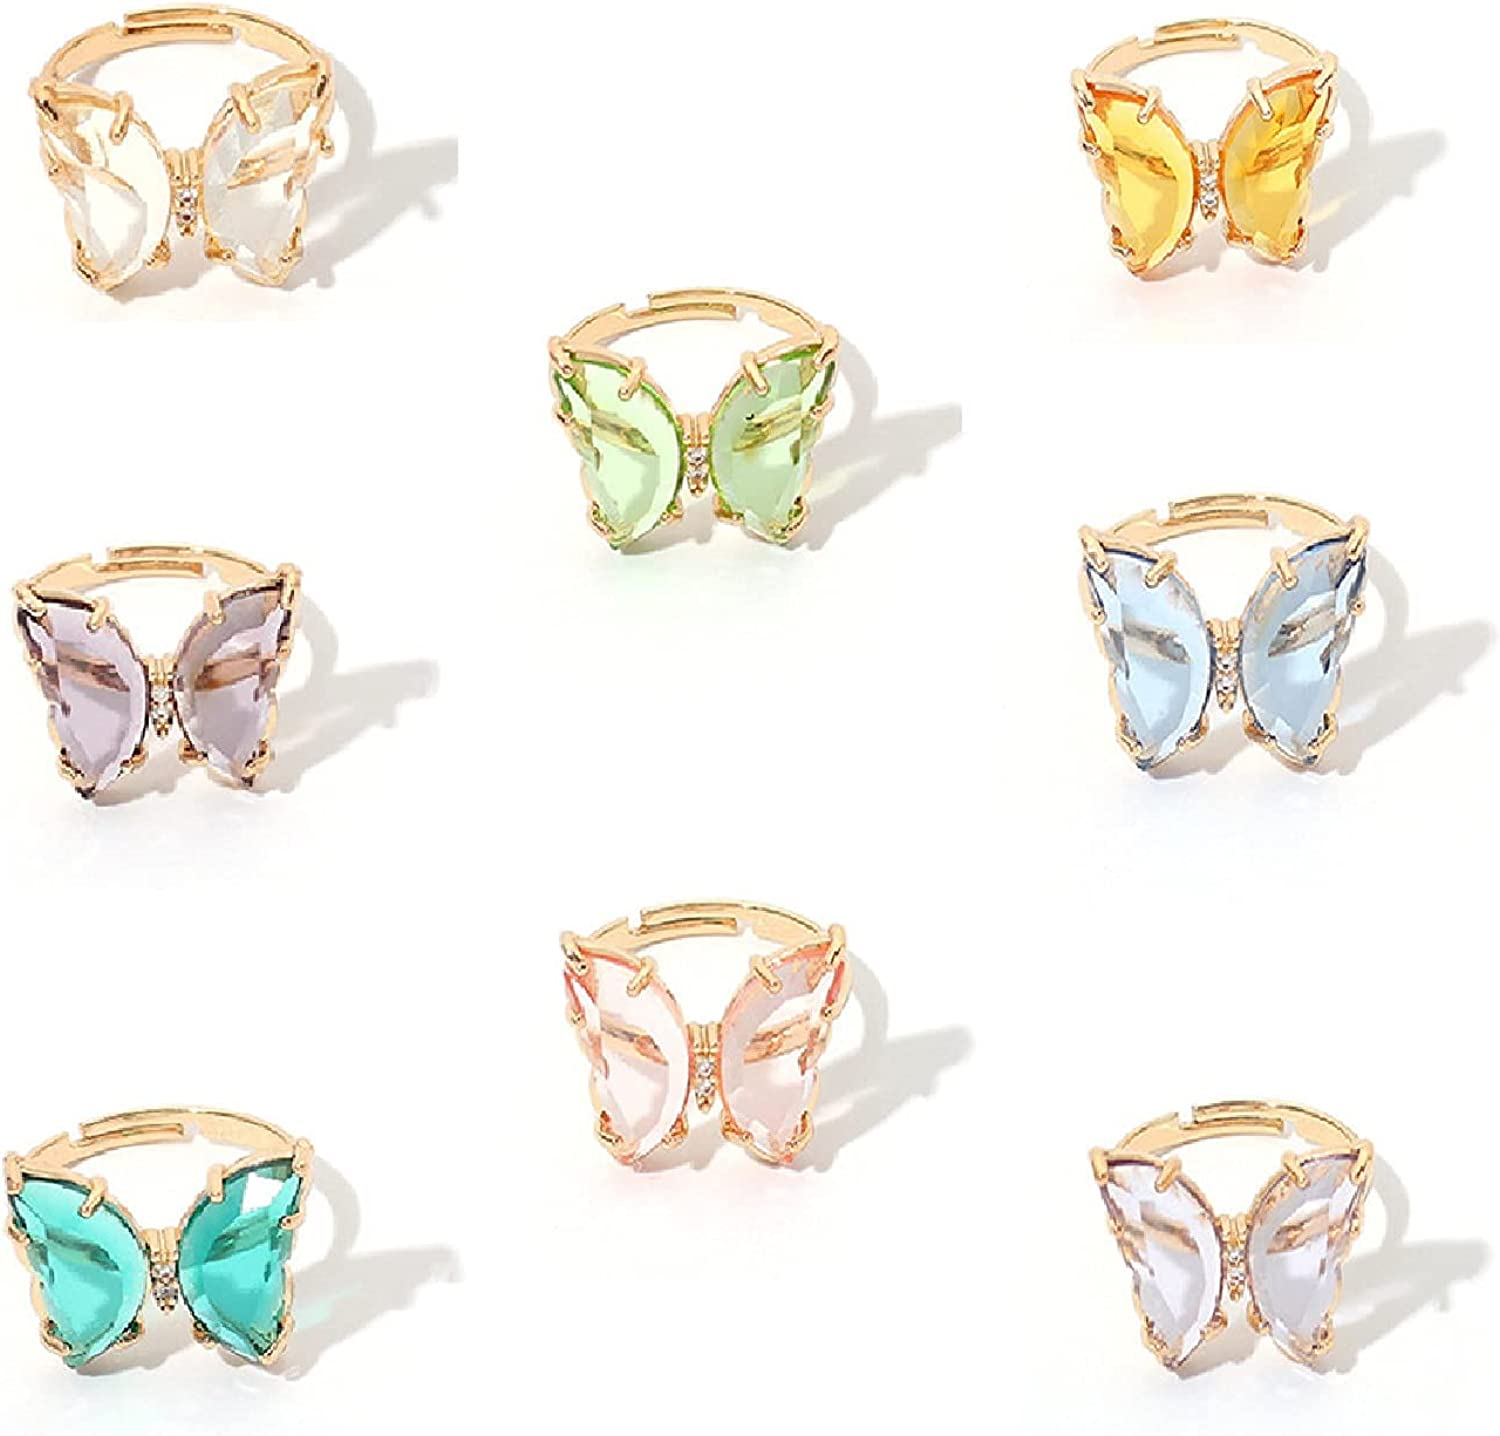 8 Pcs Acrylic Butterfly Rings Butterfly Crystal Rings Colorful Vintage Cute Rings Jewelry Colorful Butterfly Crystal Rings Set Dainty Butterfly Statement Rings for Girl Women Teens